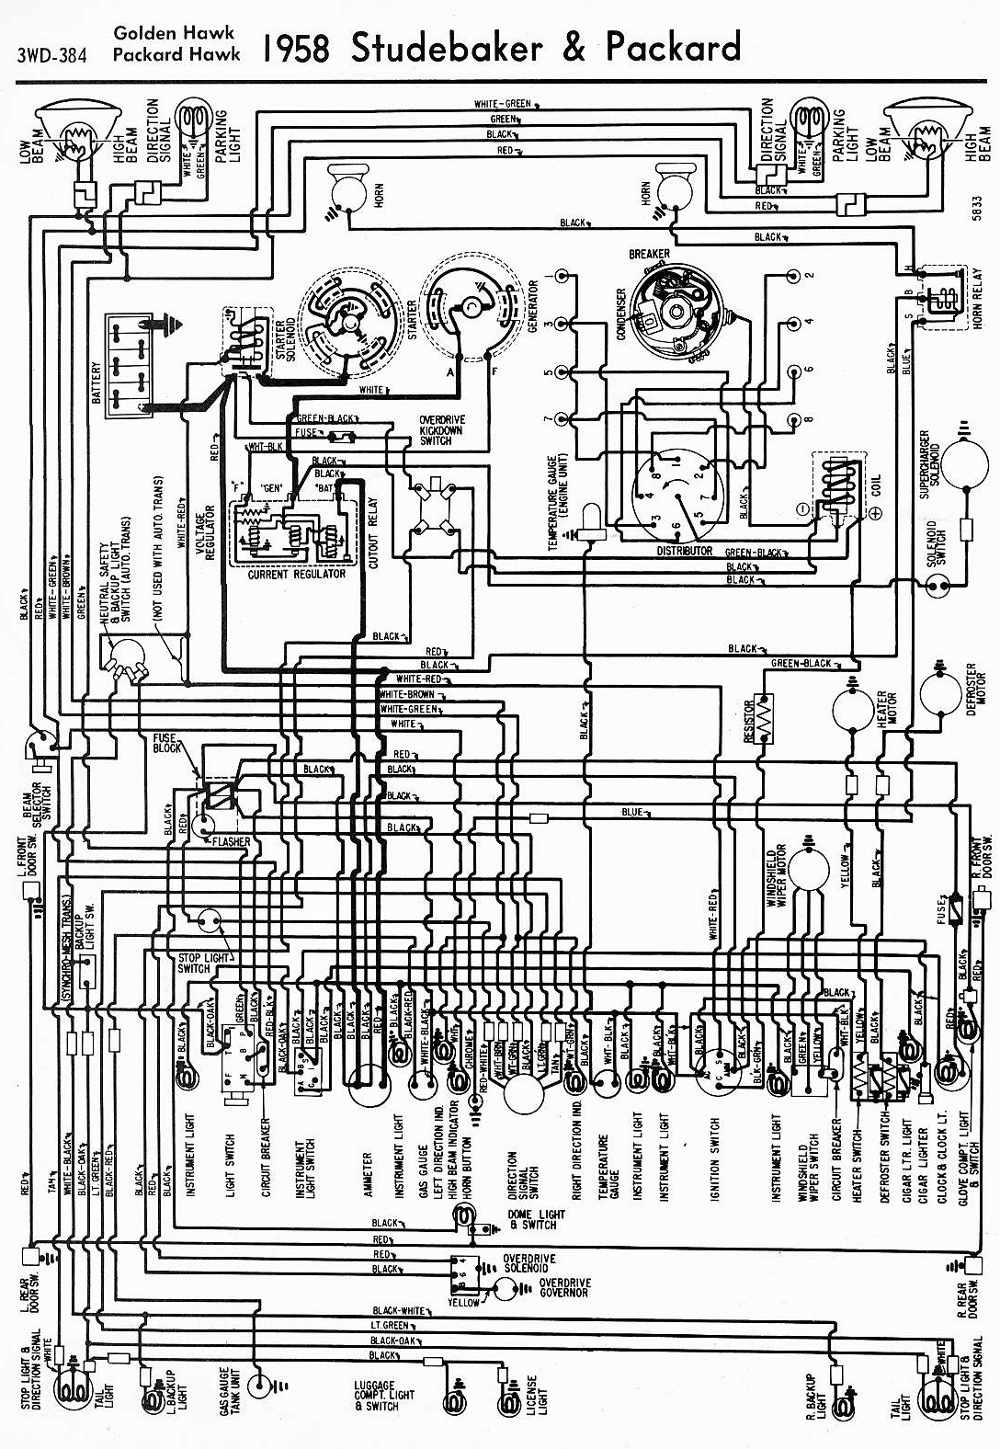 1958 Jaguar Wiring Diagram Mark 2 Electrical X Packard Car Manuals Diagrams Pdf Fault Codes On